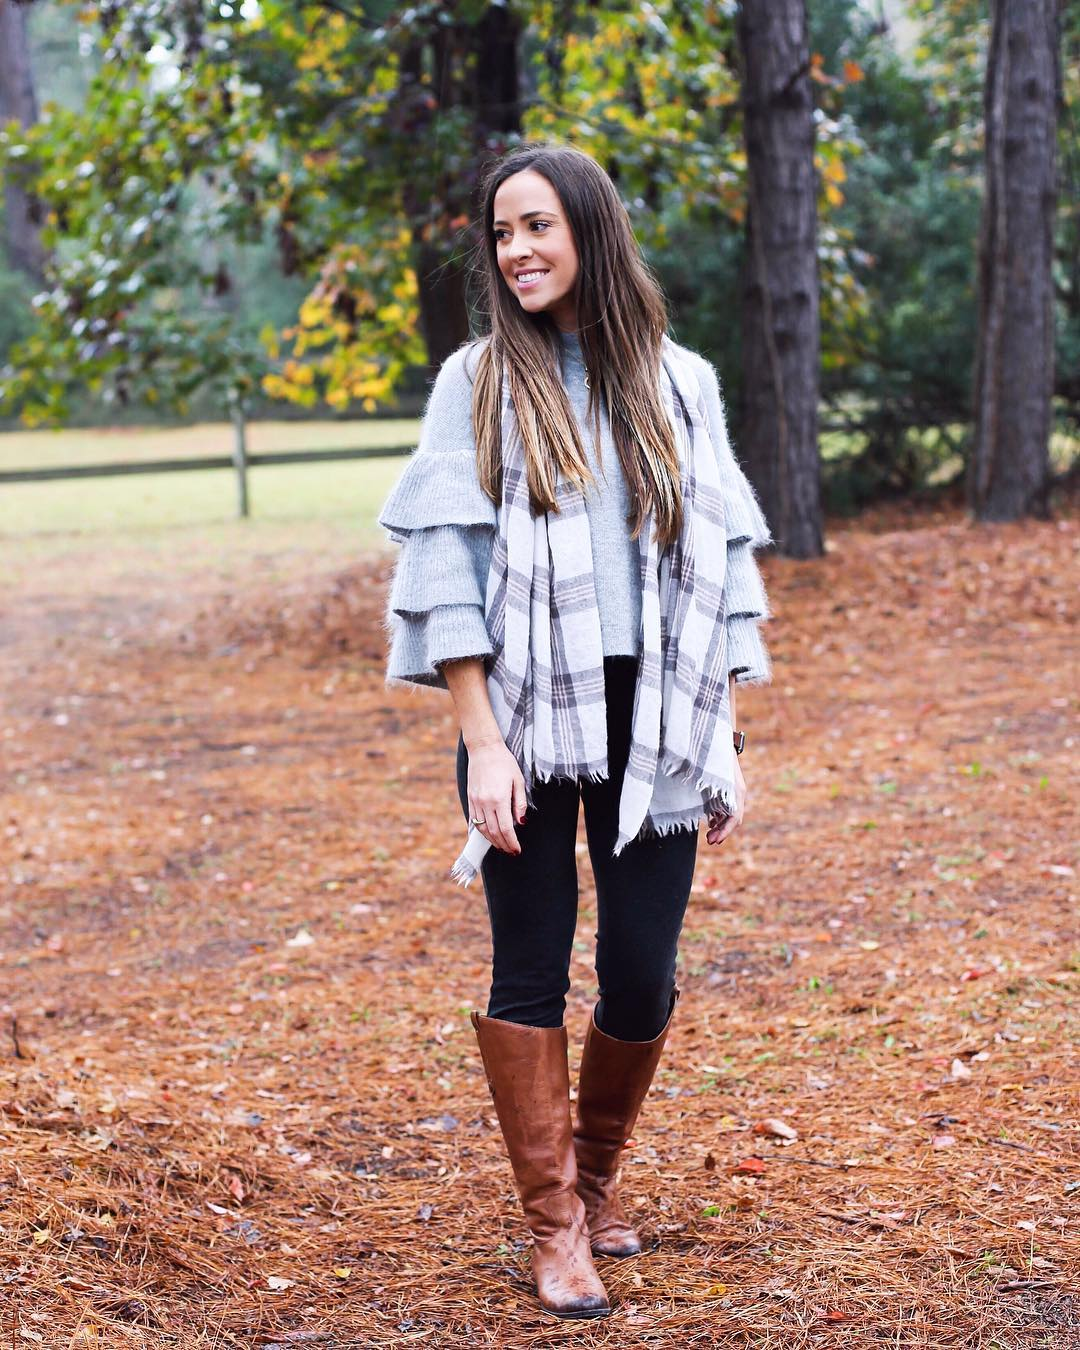 Ruffle Sleeve Sweater With Jeans And Plaid Scarf